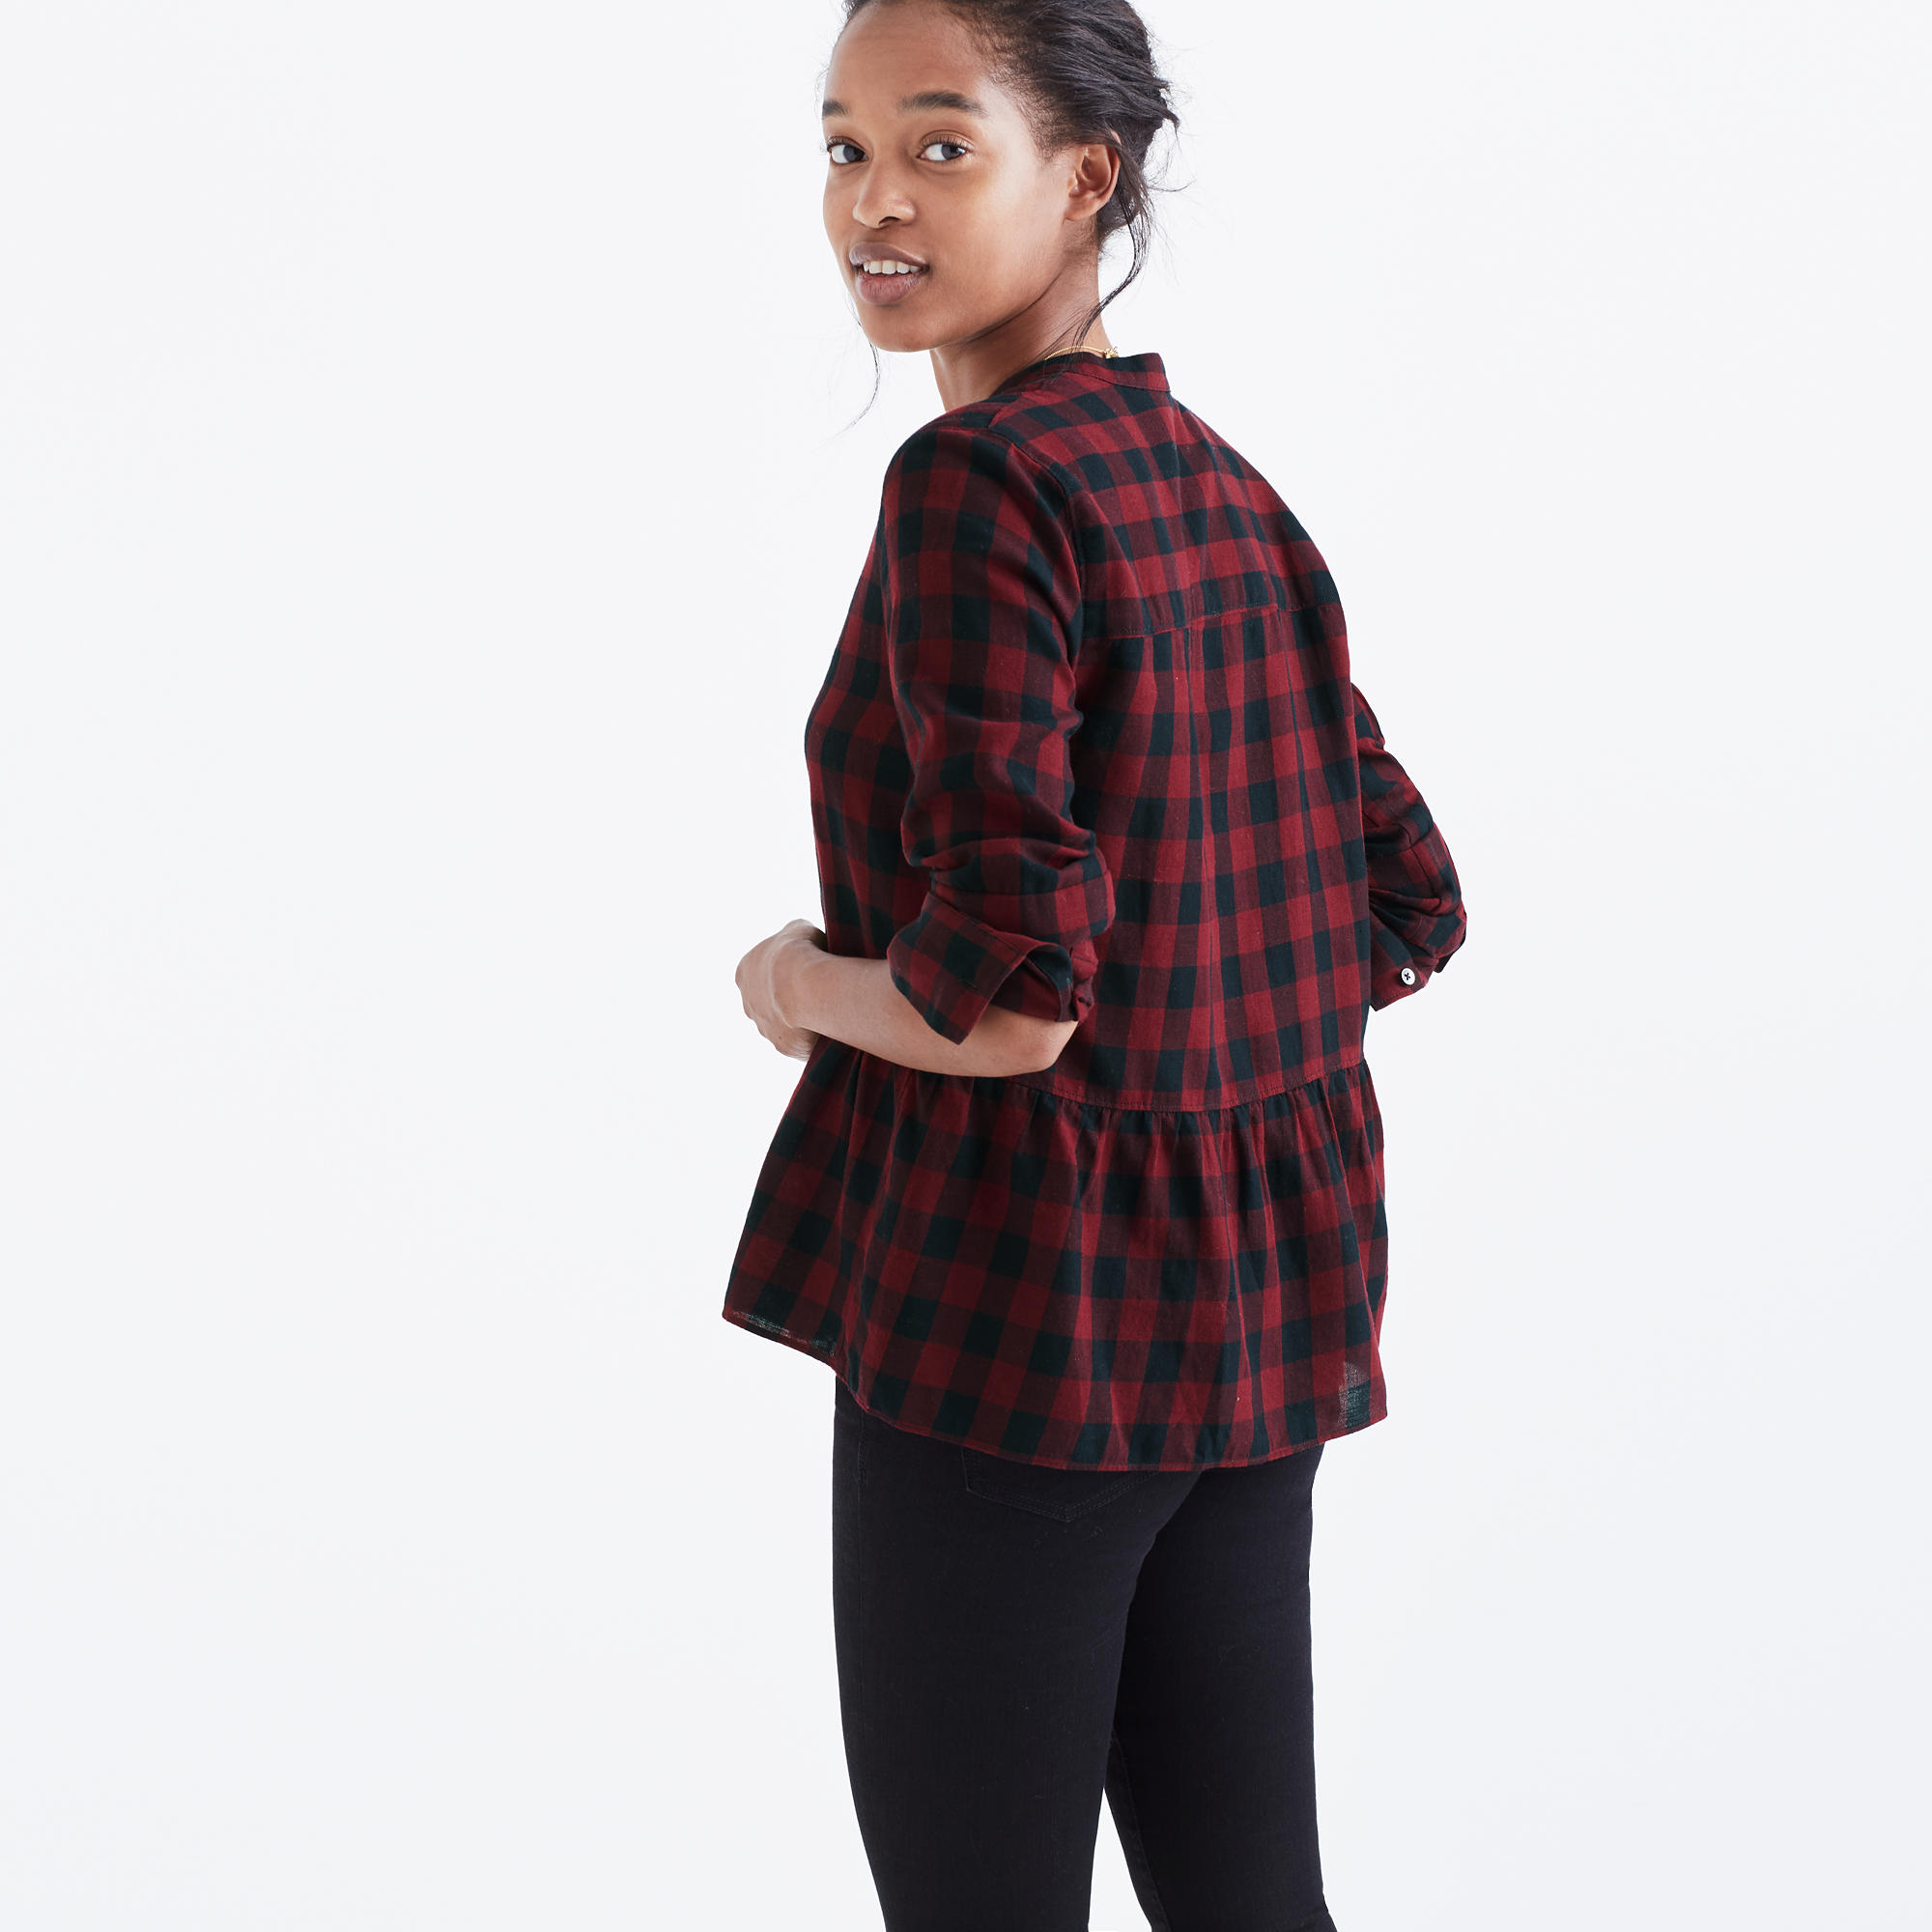 Ideal Lakeside Peplum Shirt in Buffalo Check : shopmadewell button-up  BM99